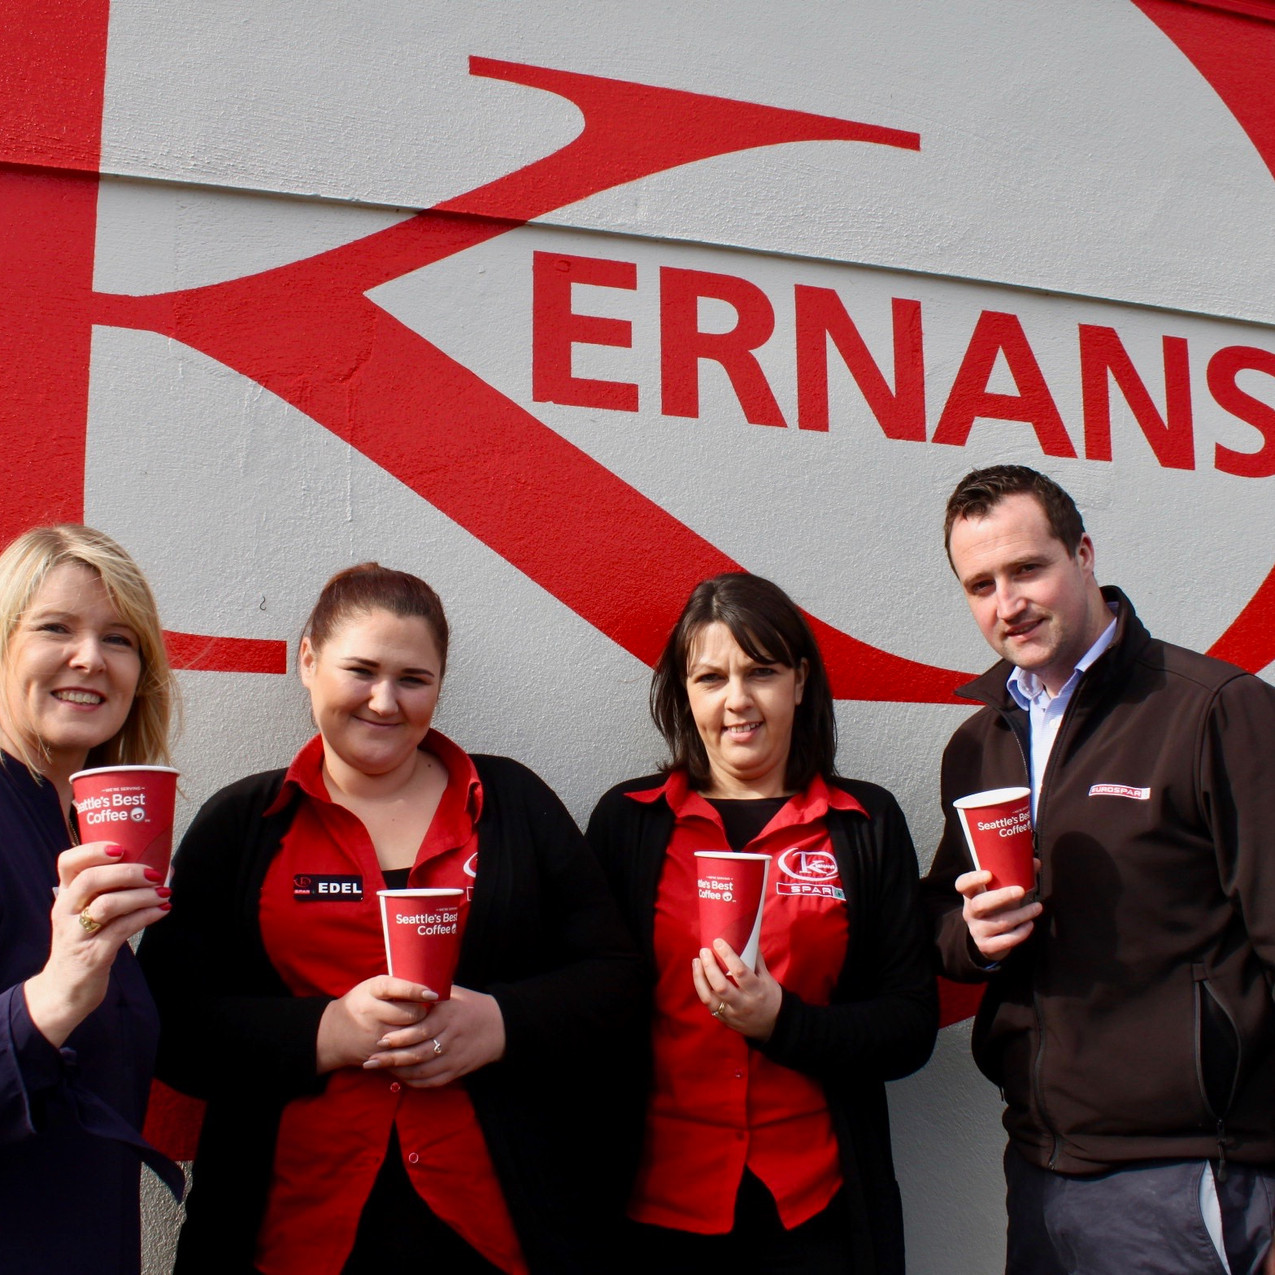 Kernans Tullygay. Caroline Sweeney from the Hospice pictured with Edel Frize, Laura mc Fadden and Conor Coyle from Kernans to launch the Coffee Morning